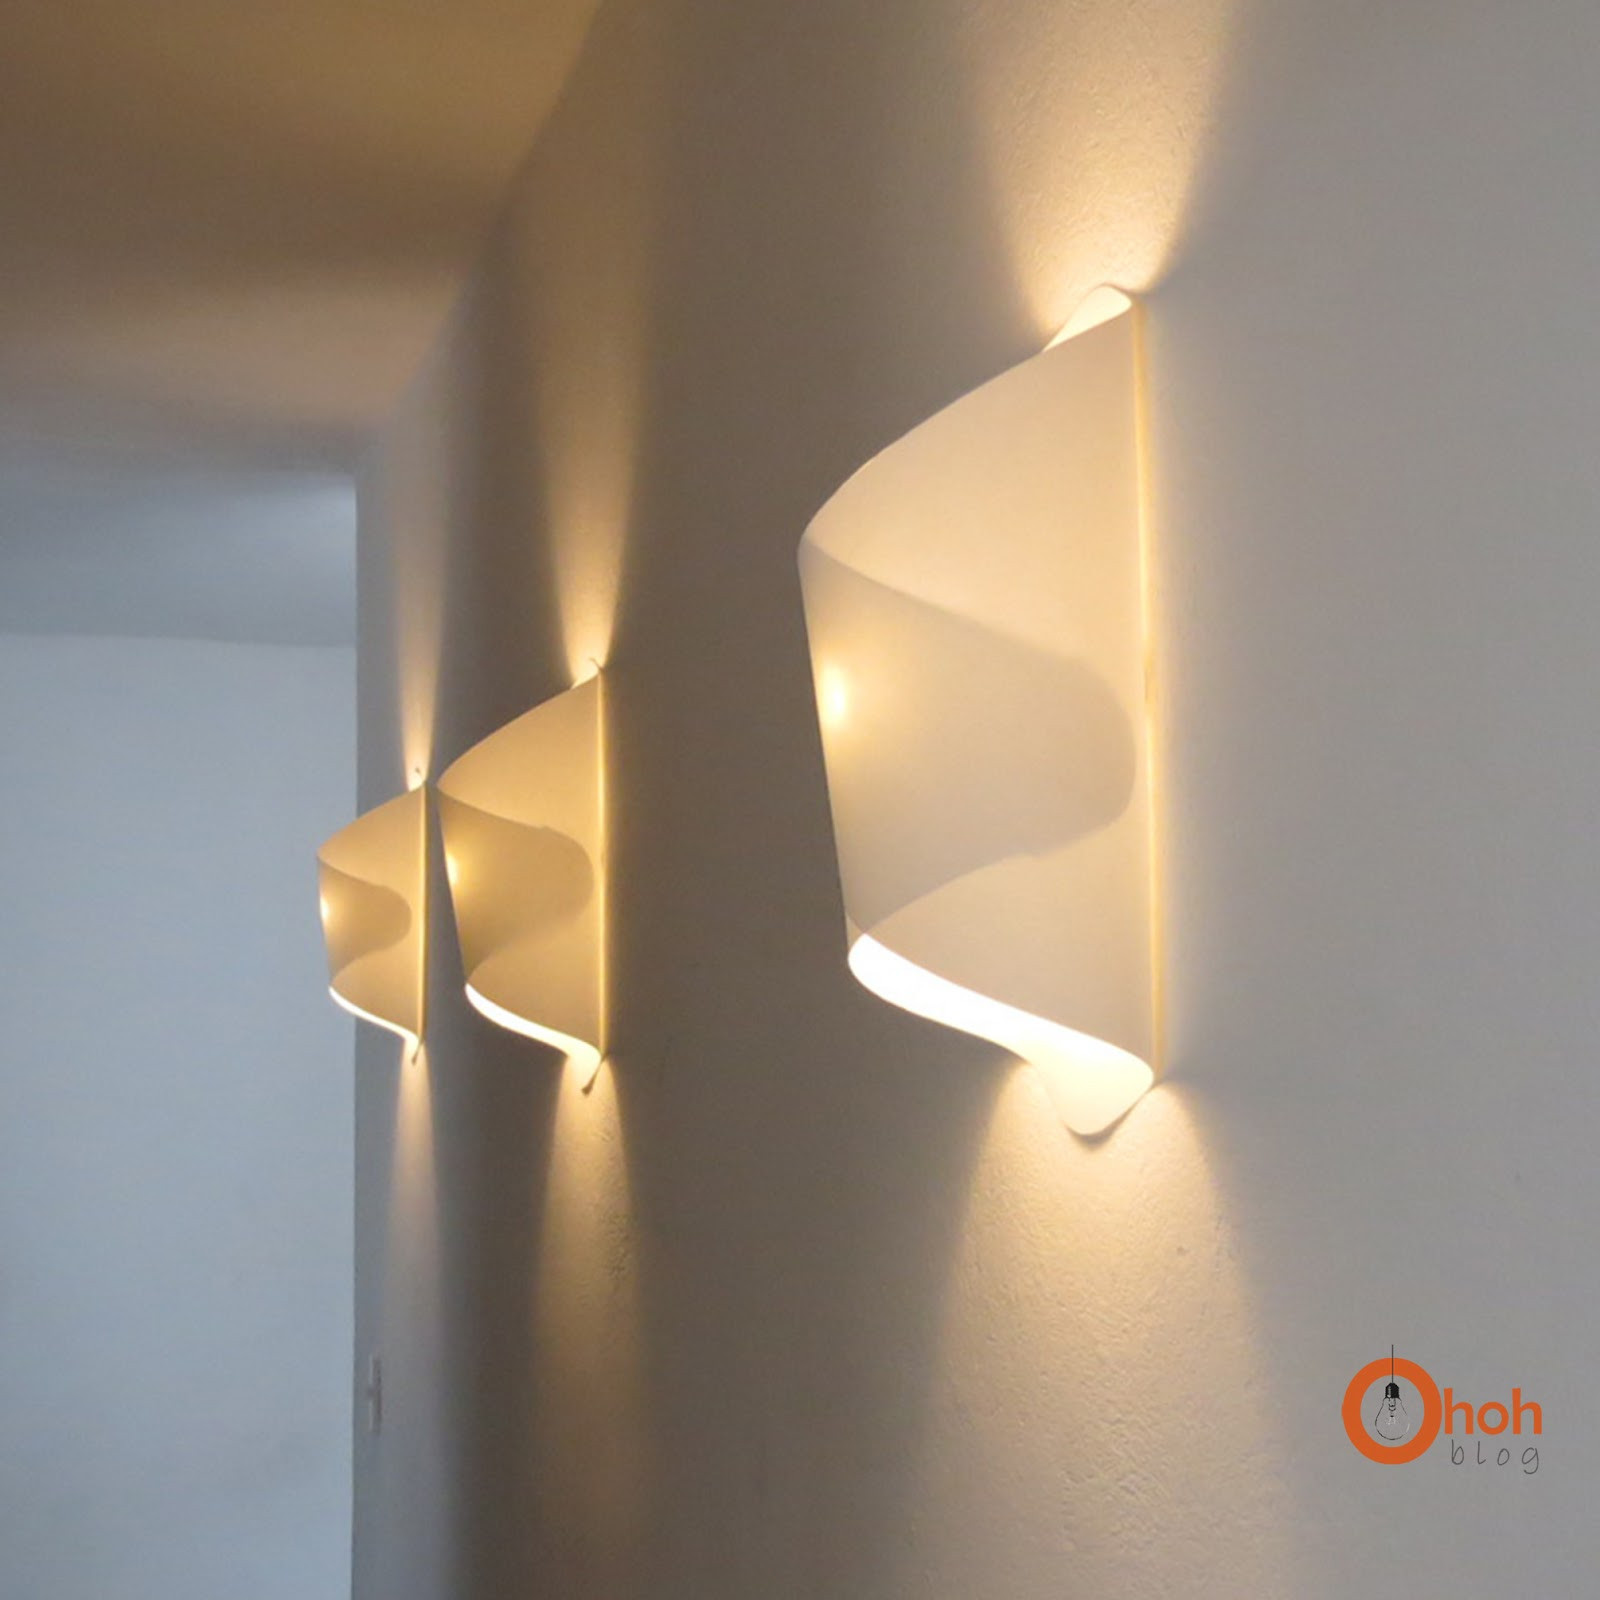 Best ideas about DIY Wall Lighting . Save or Pin DIY paper lamp Lampara de papel Ohoh Blog Now.